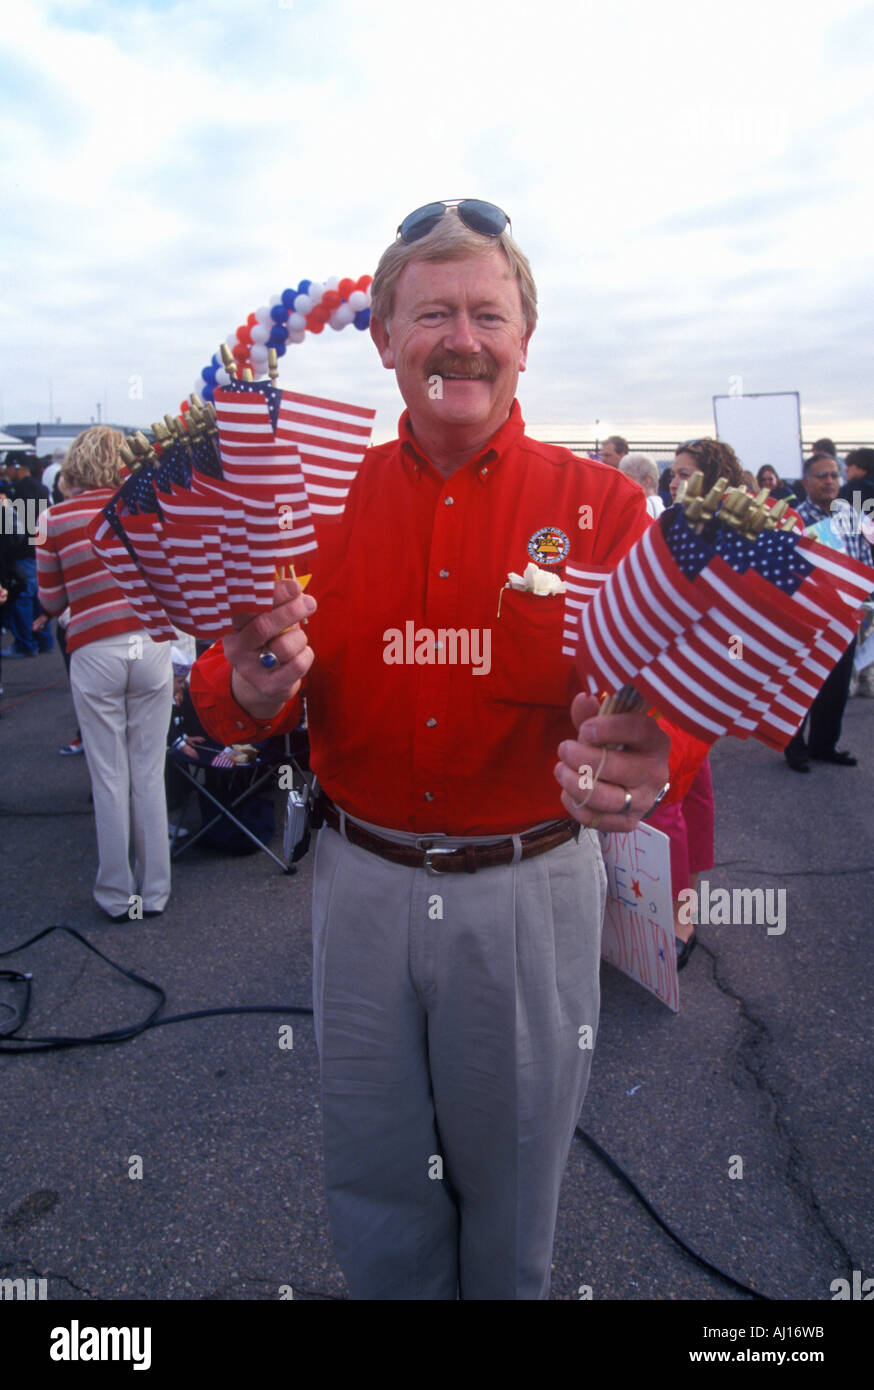 Smiling man with US Flags welcomes home sailors on USS Abraham Lincoln aircraft carrier from Iraq war - Stock Image